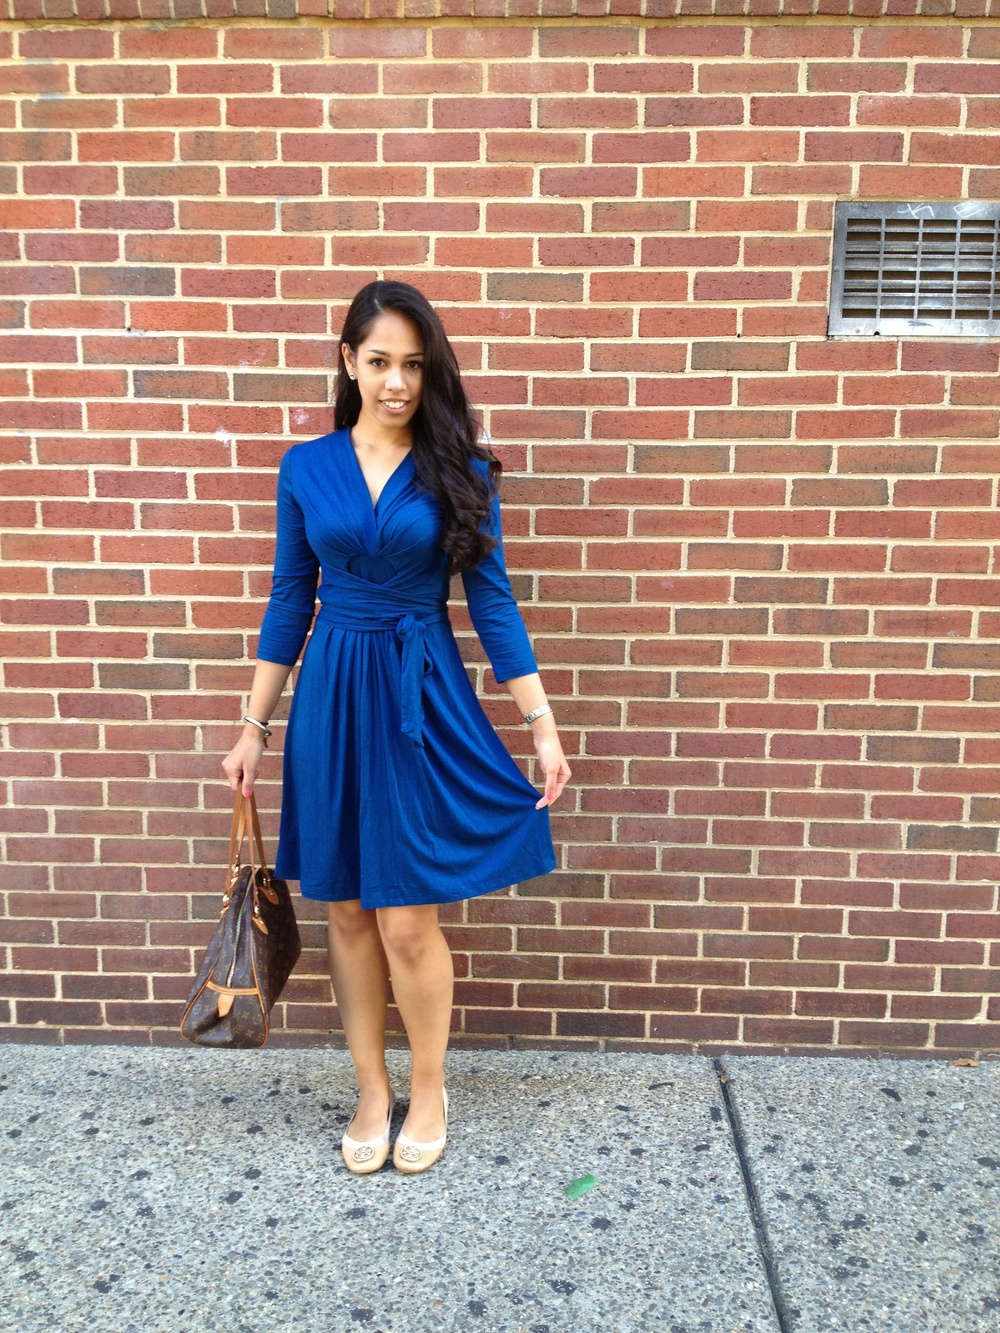 philadelphia-fashion-blue-dress.jpg